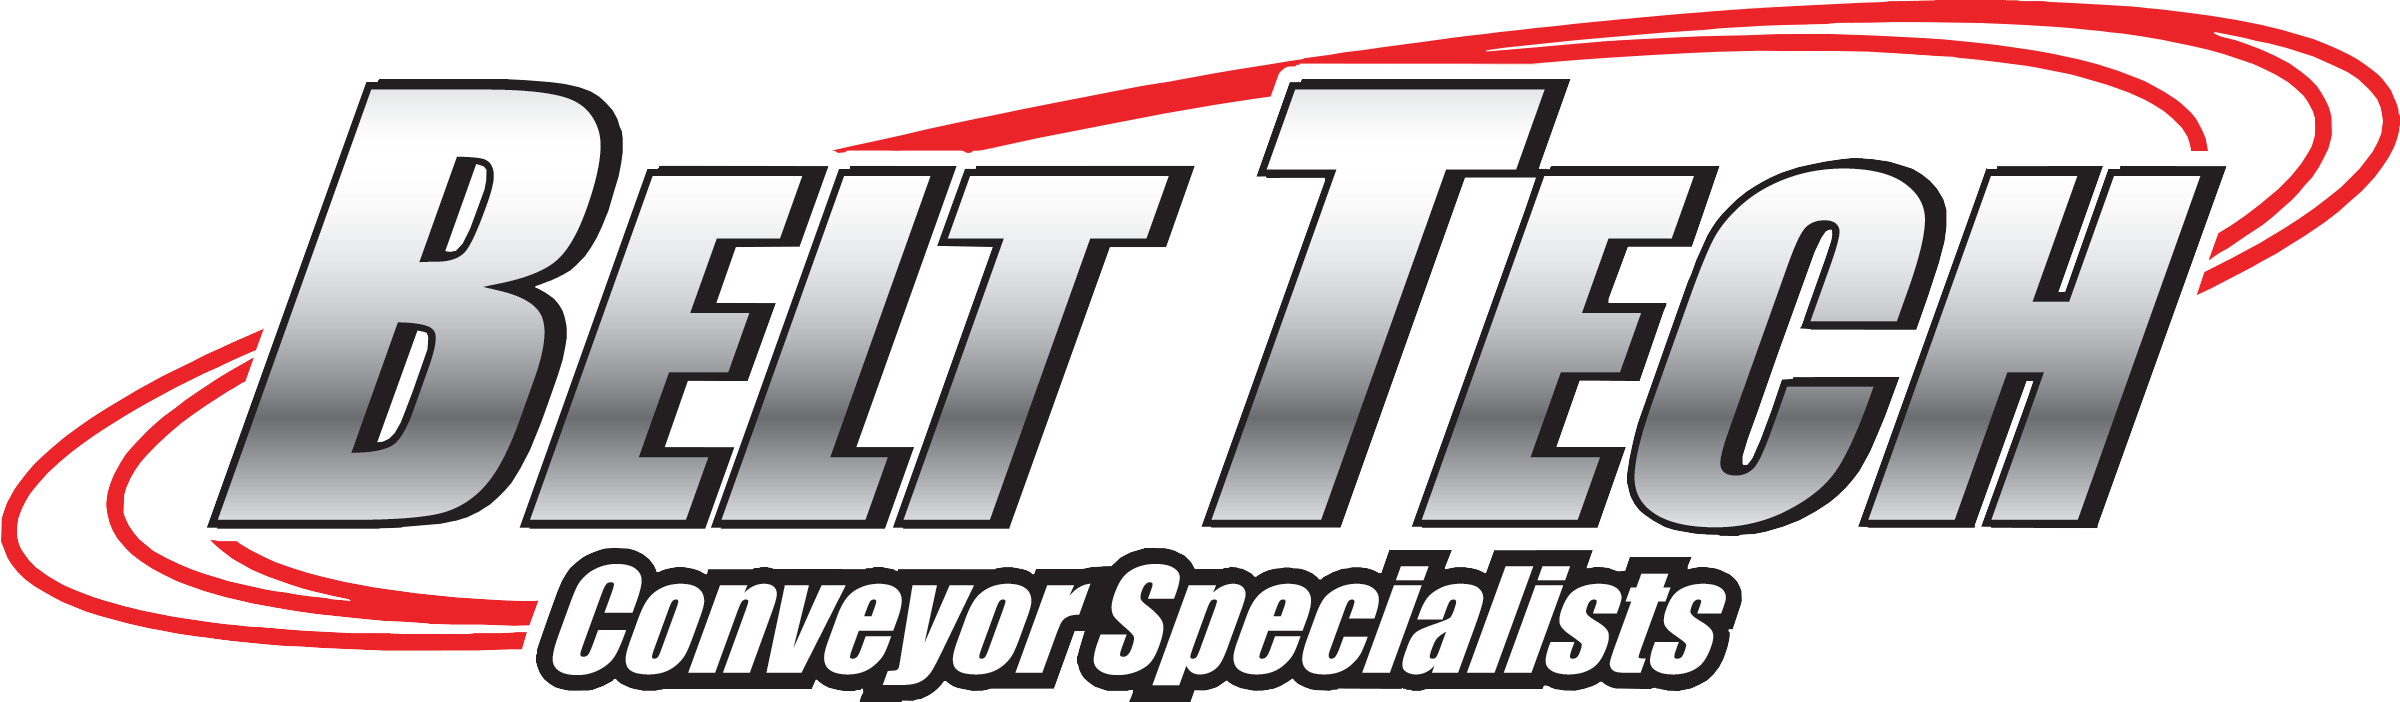 belt tech equipment dealer logo